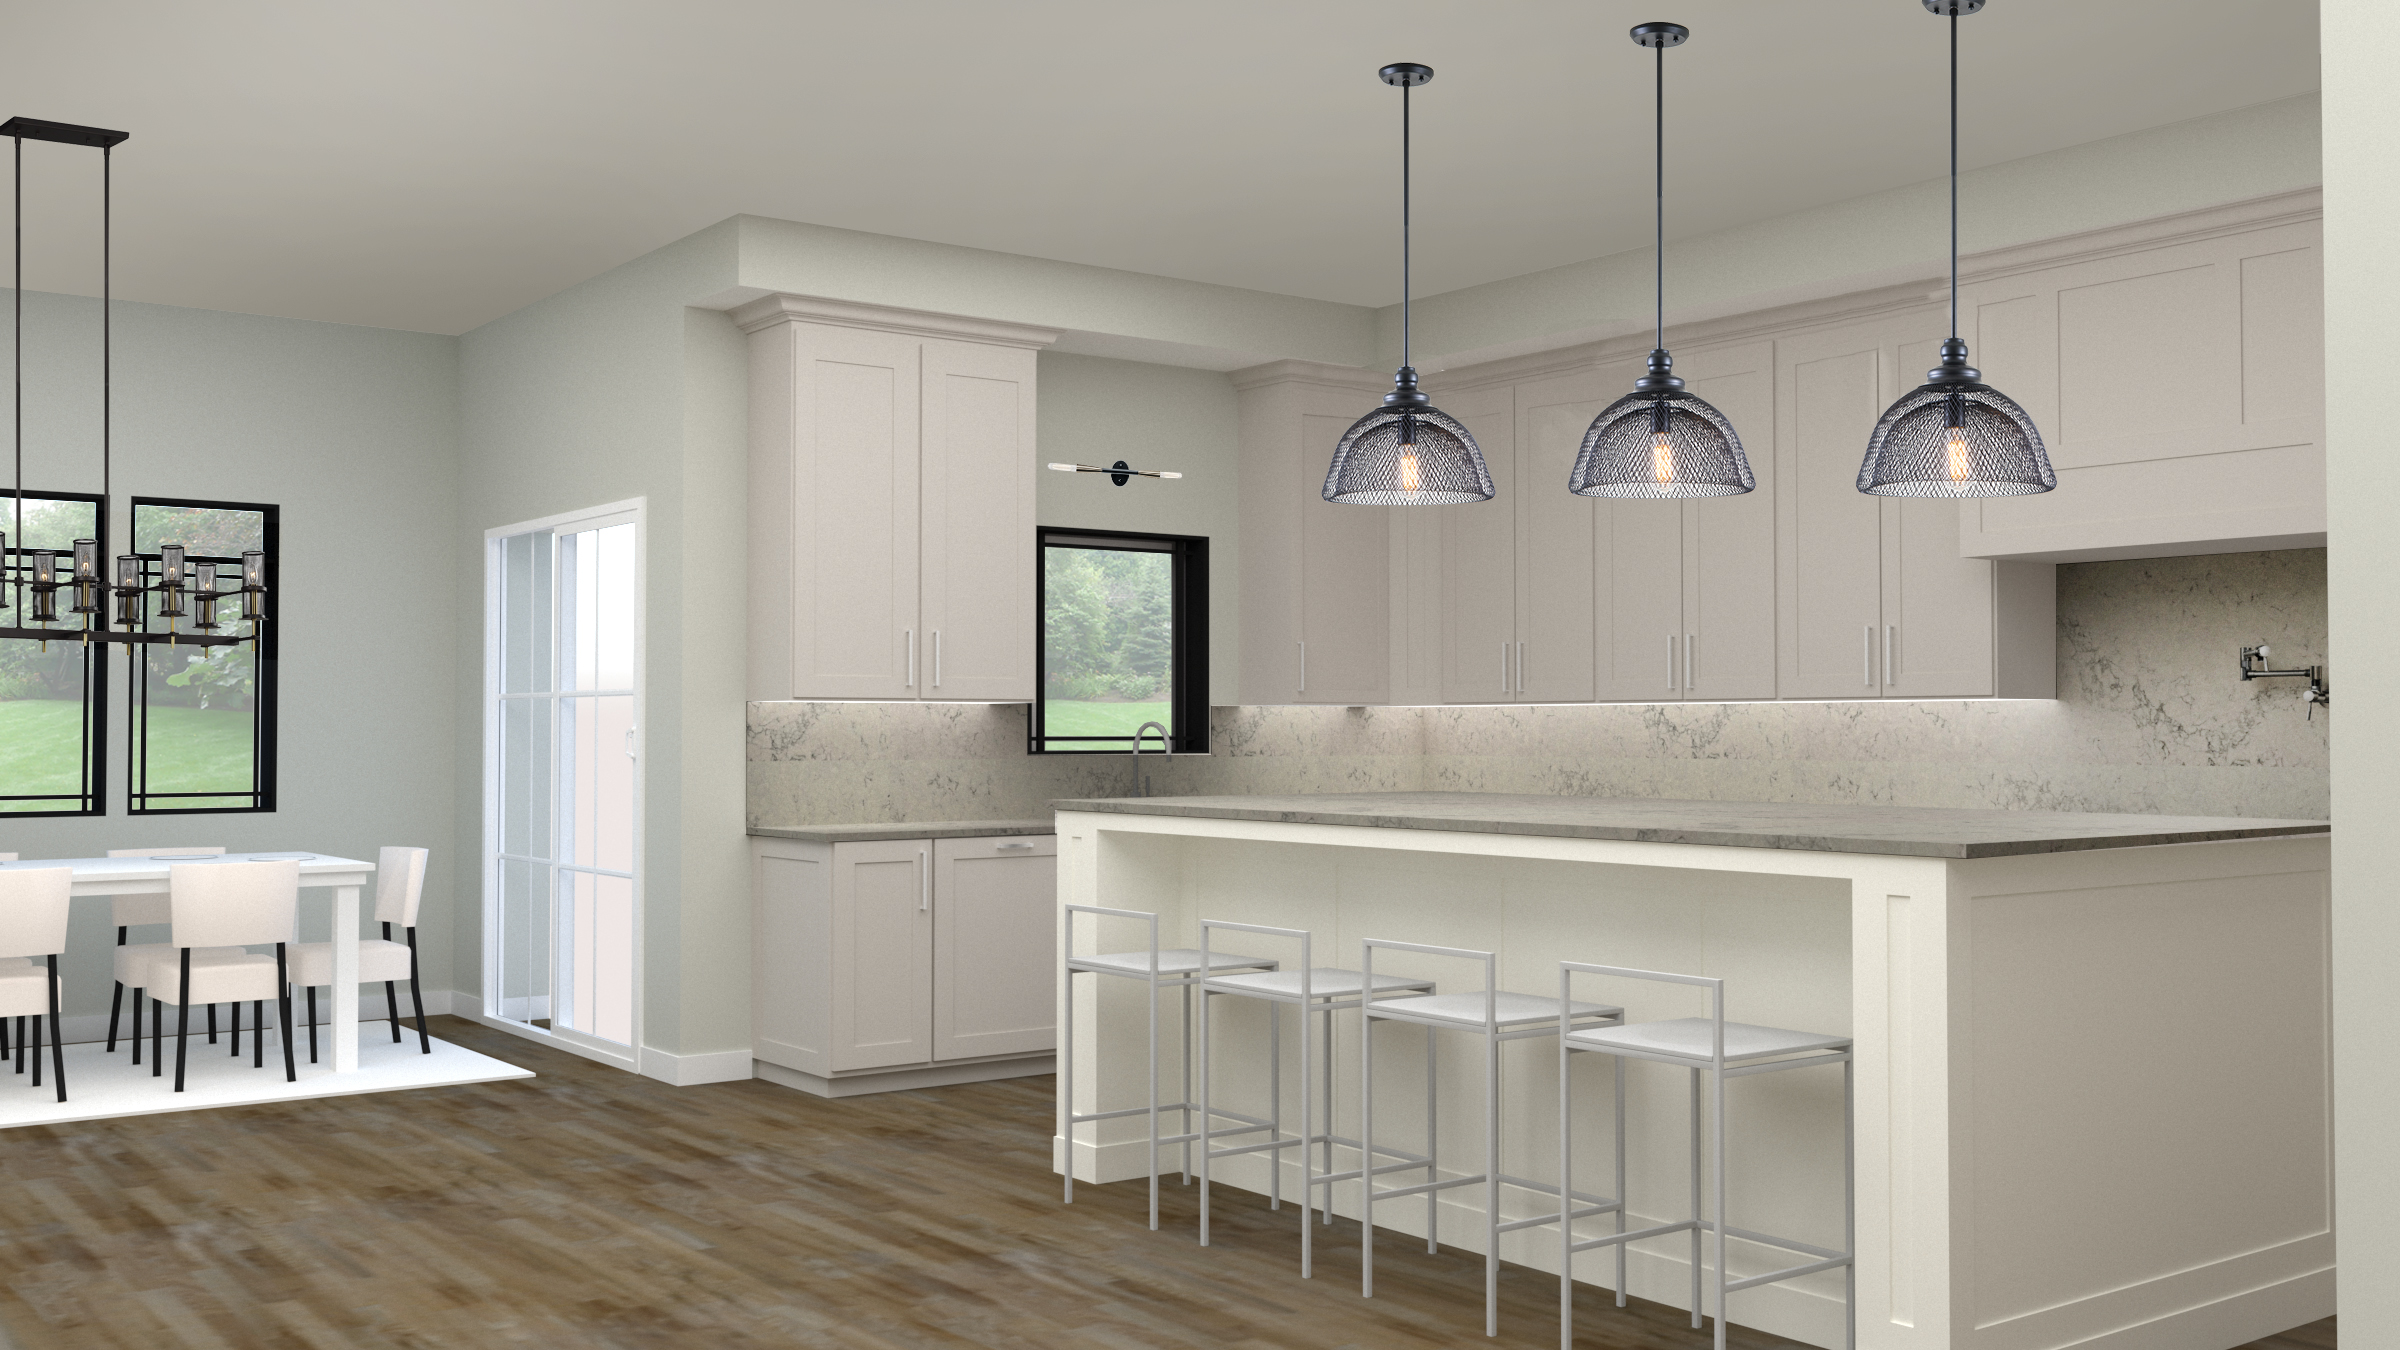 The kitchen rendering shows neutral, shaker style cabinets with a huge island and quartz countertops carrying up the backsplash